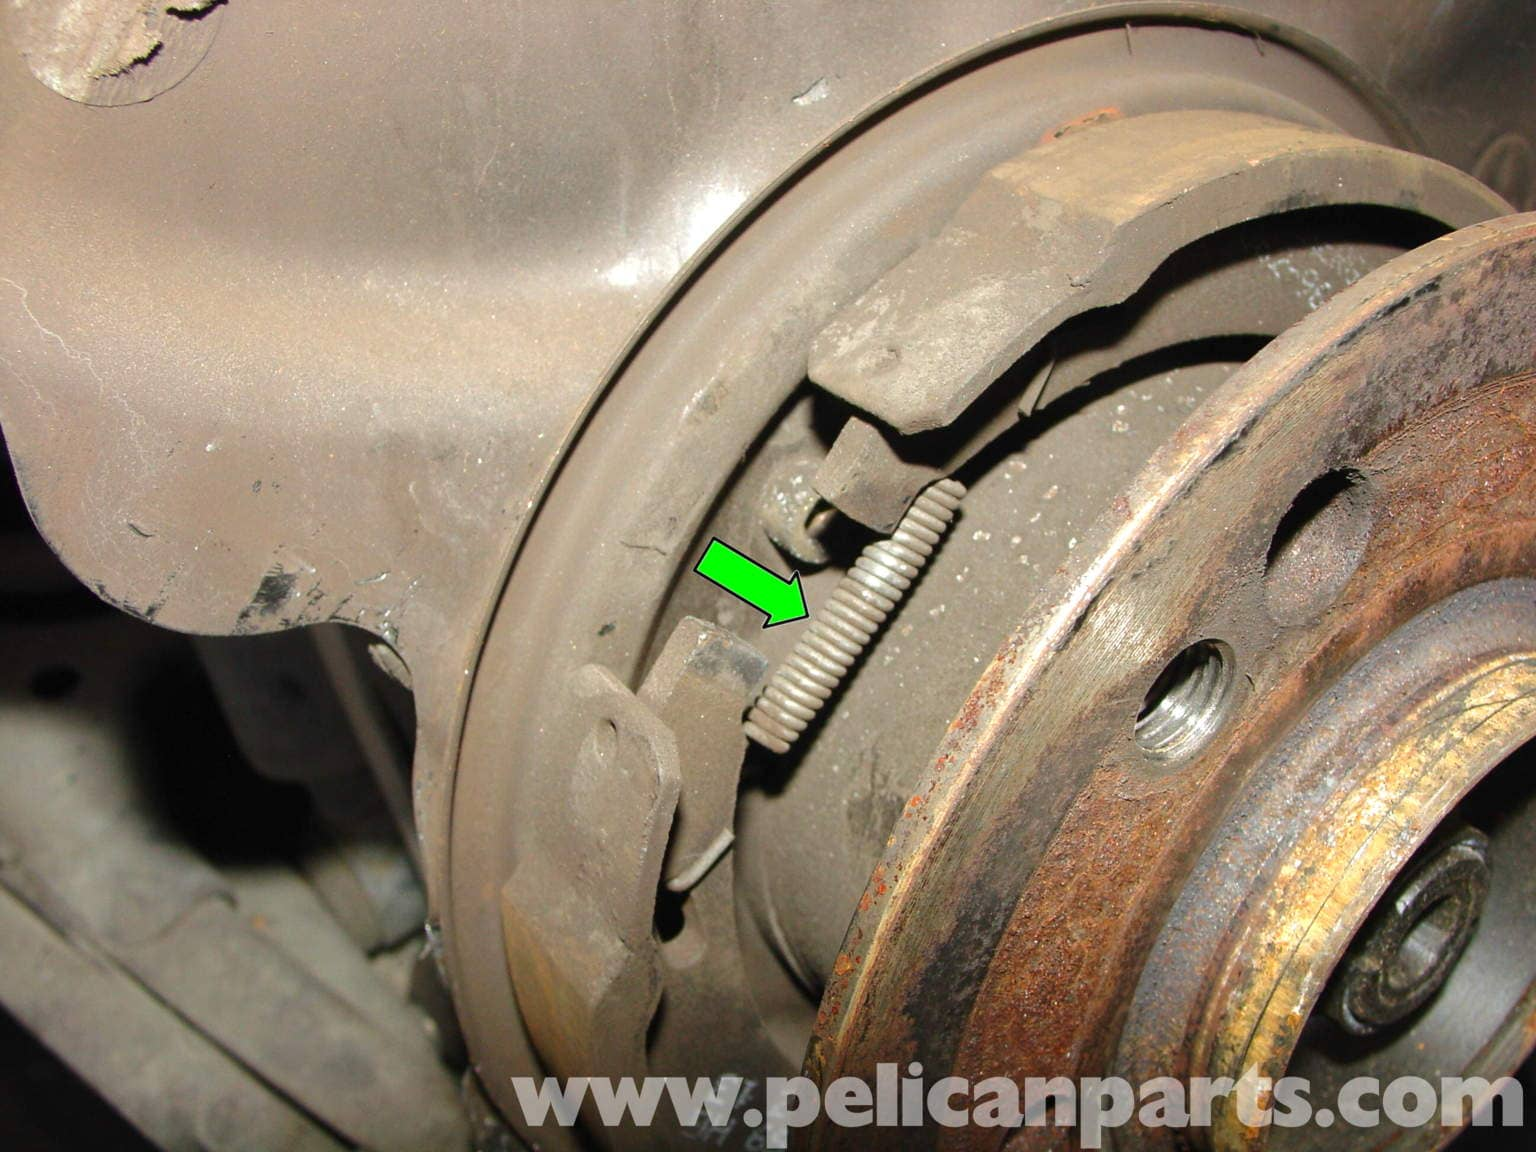 Mercedes benz w210 parking brake replacement 1996 03 for Replacement parts for mercedes benz